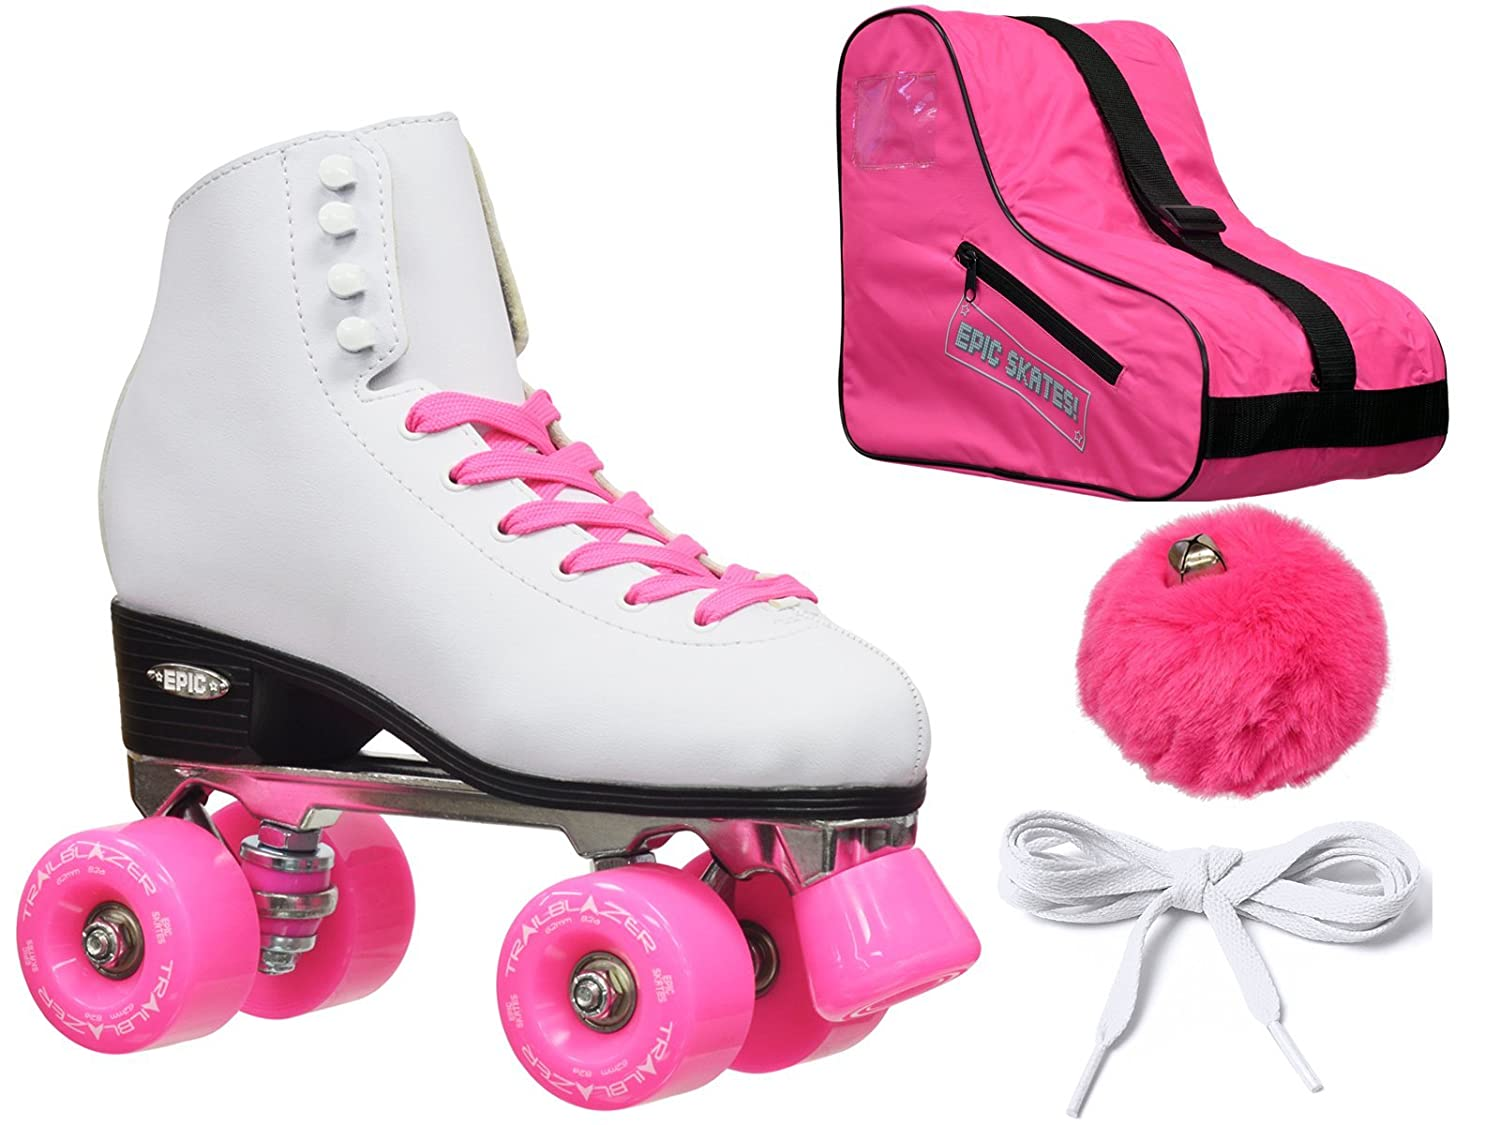 Epic Skates Epic White and Pink Classic High-Top Quad Roller Skate Bundle with Pink Skate Bag, Pompoms and 2 Pair of Laces